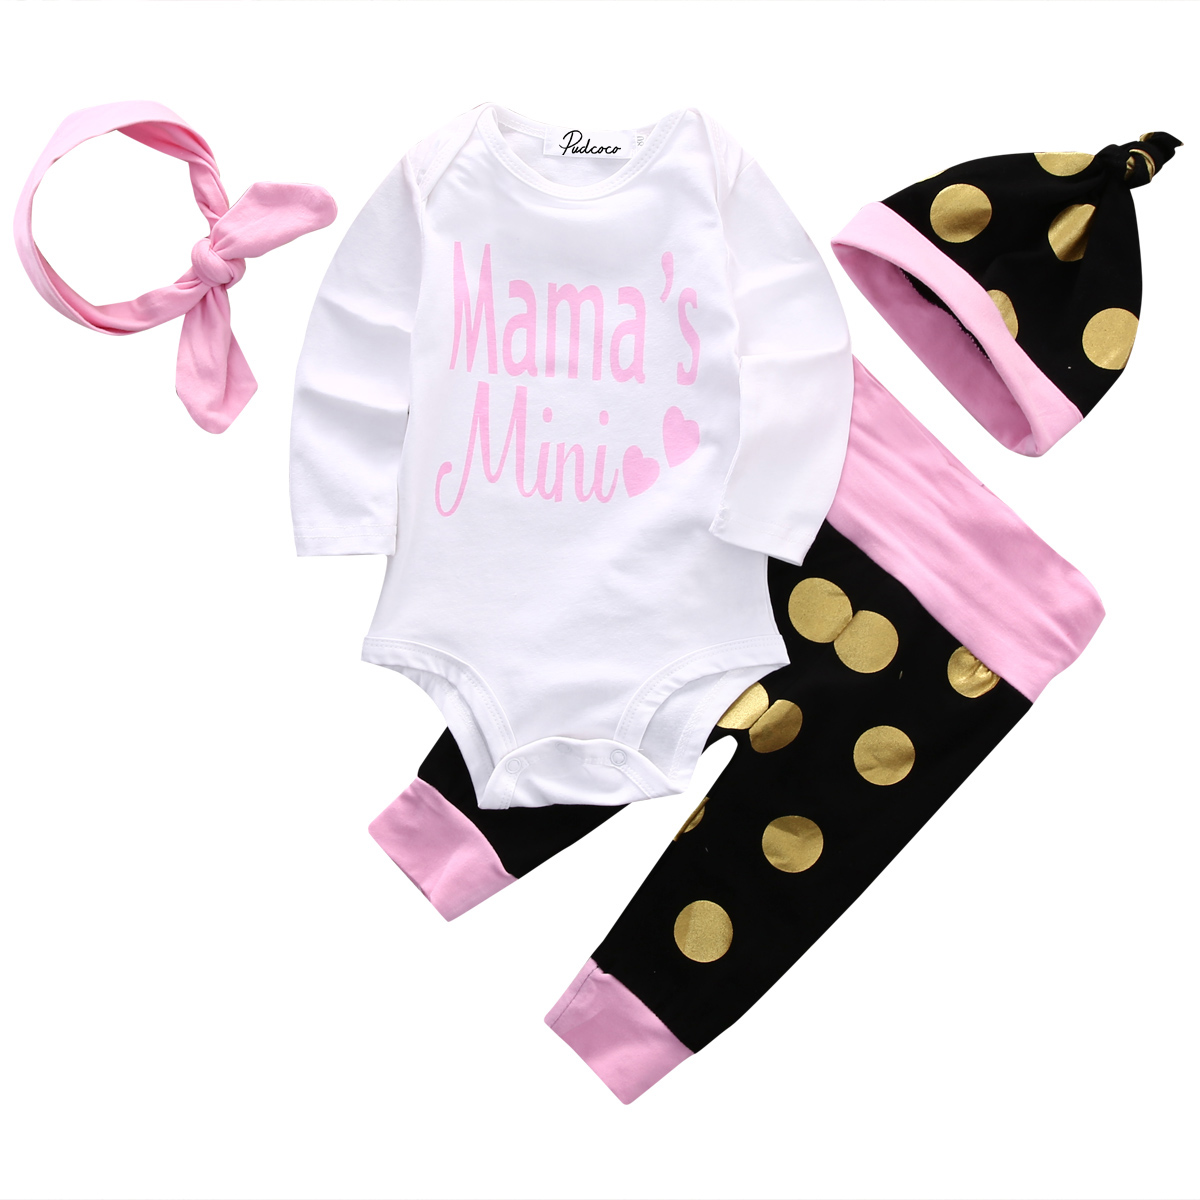 4Pcs Toddler Infant Newborn Baby Girl Long Sleeve Letter Print Romper Dot Long Pants Jumpsuit Casual Girls Clothes Outfits Sets